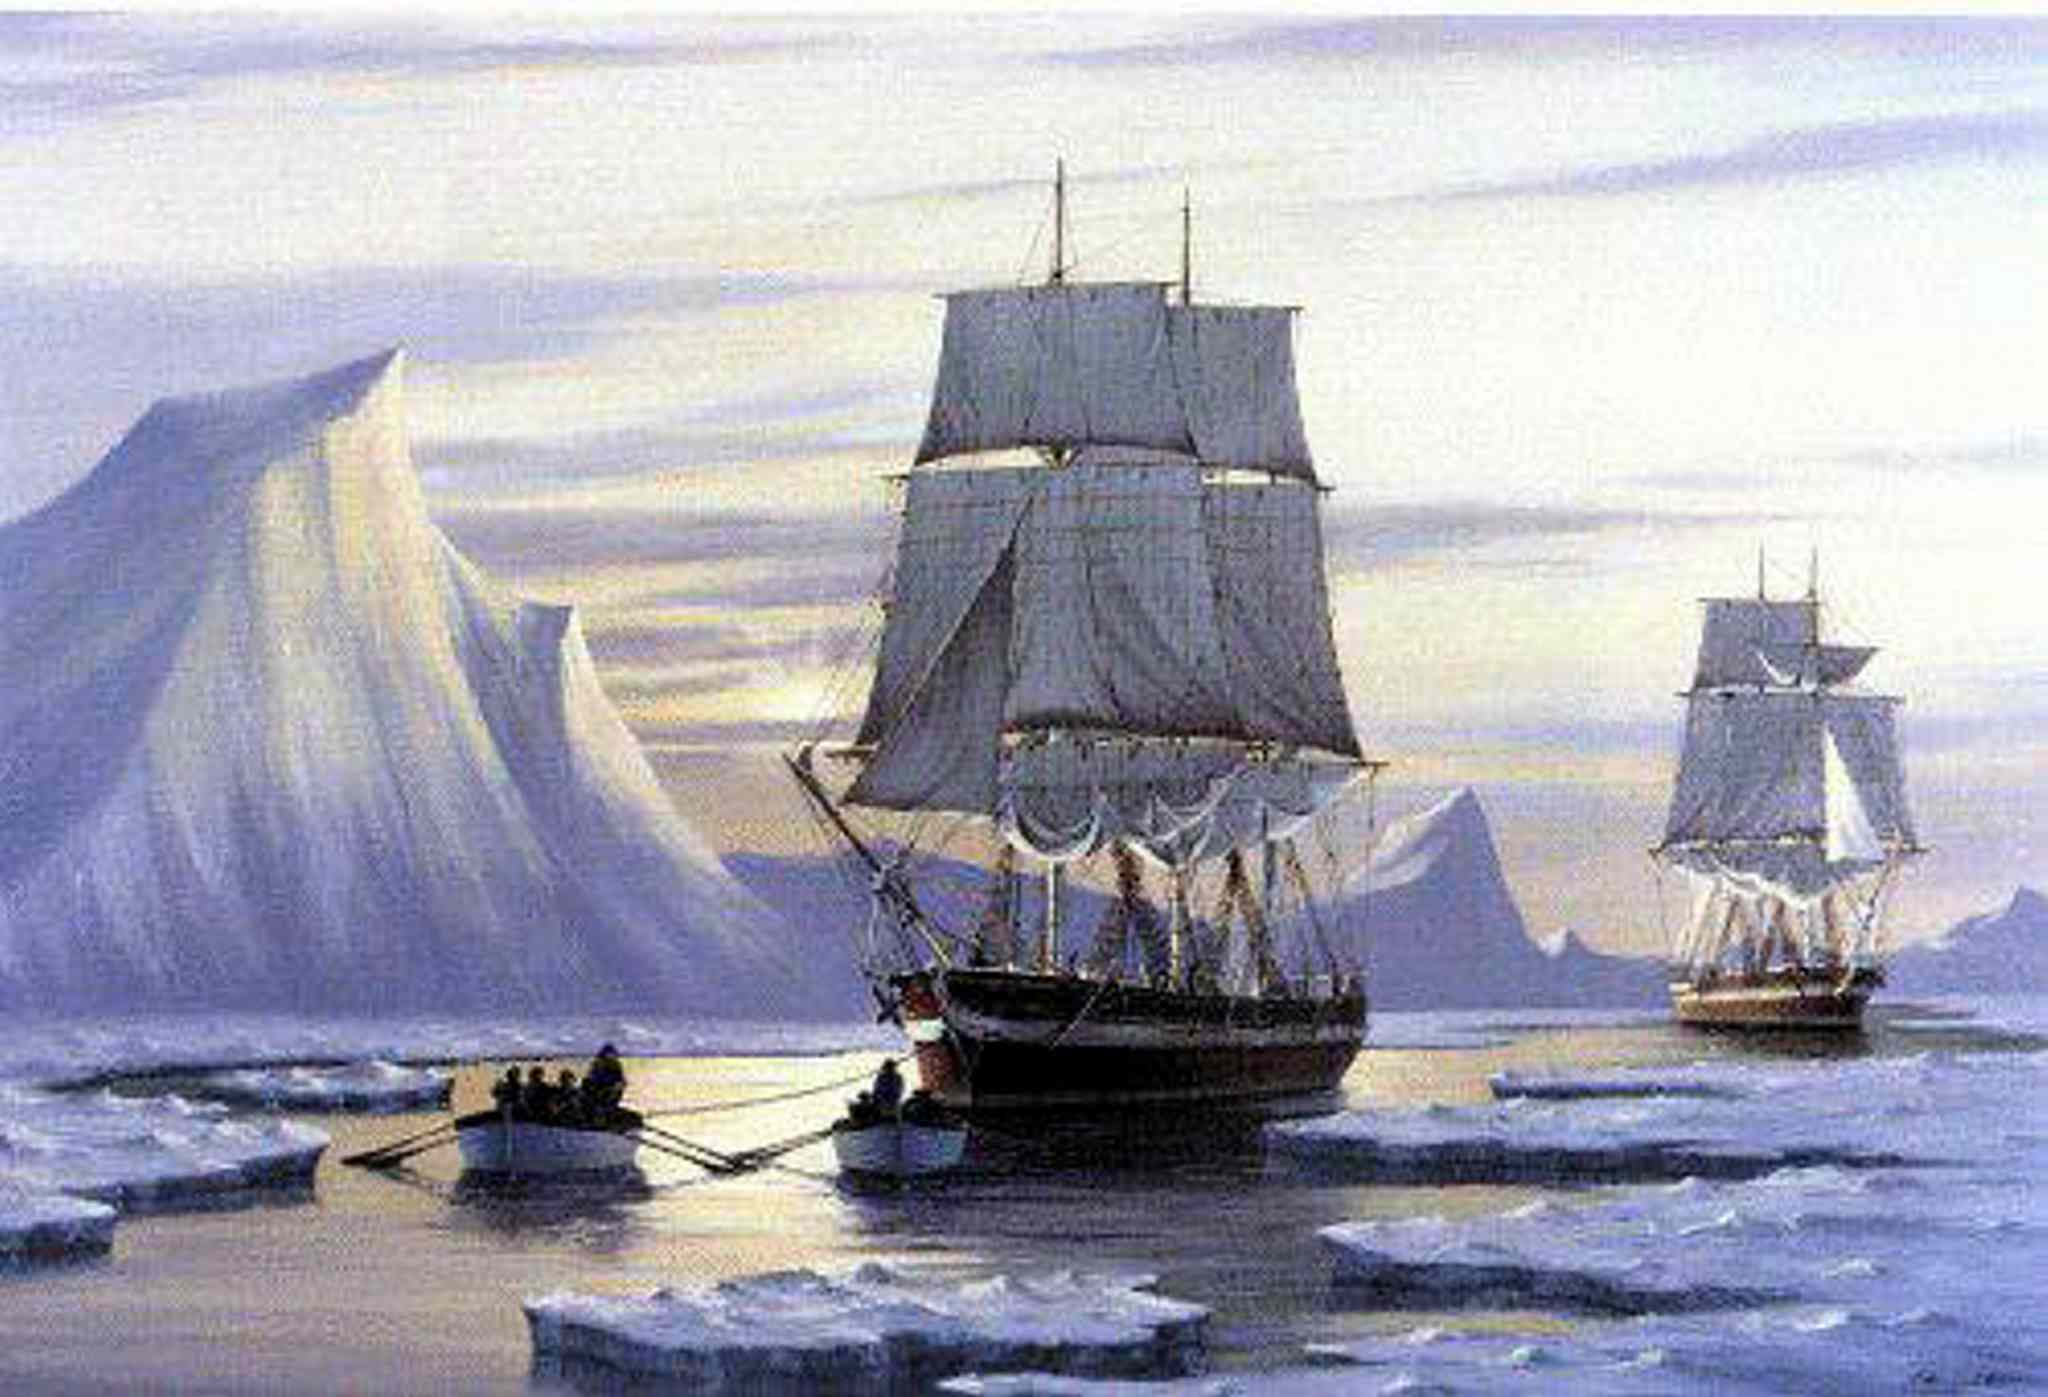 The Erebus and the Terror, ships from the 1845 Franklin expedition of Sir John Franklin.